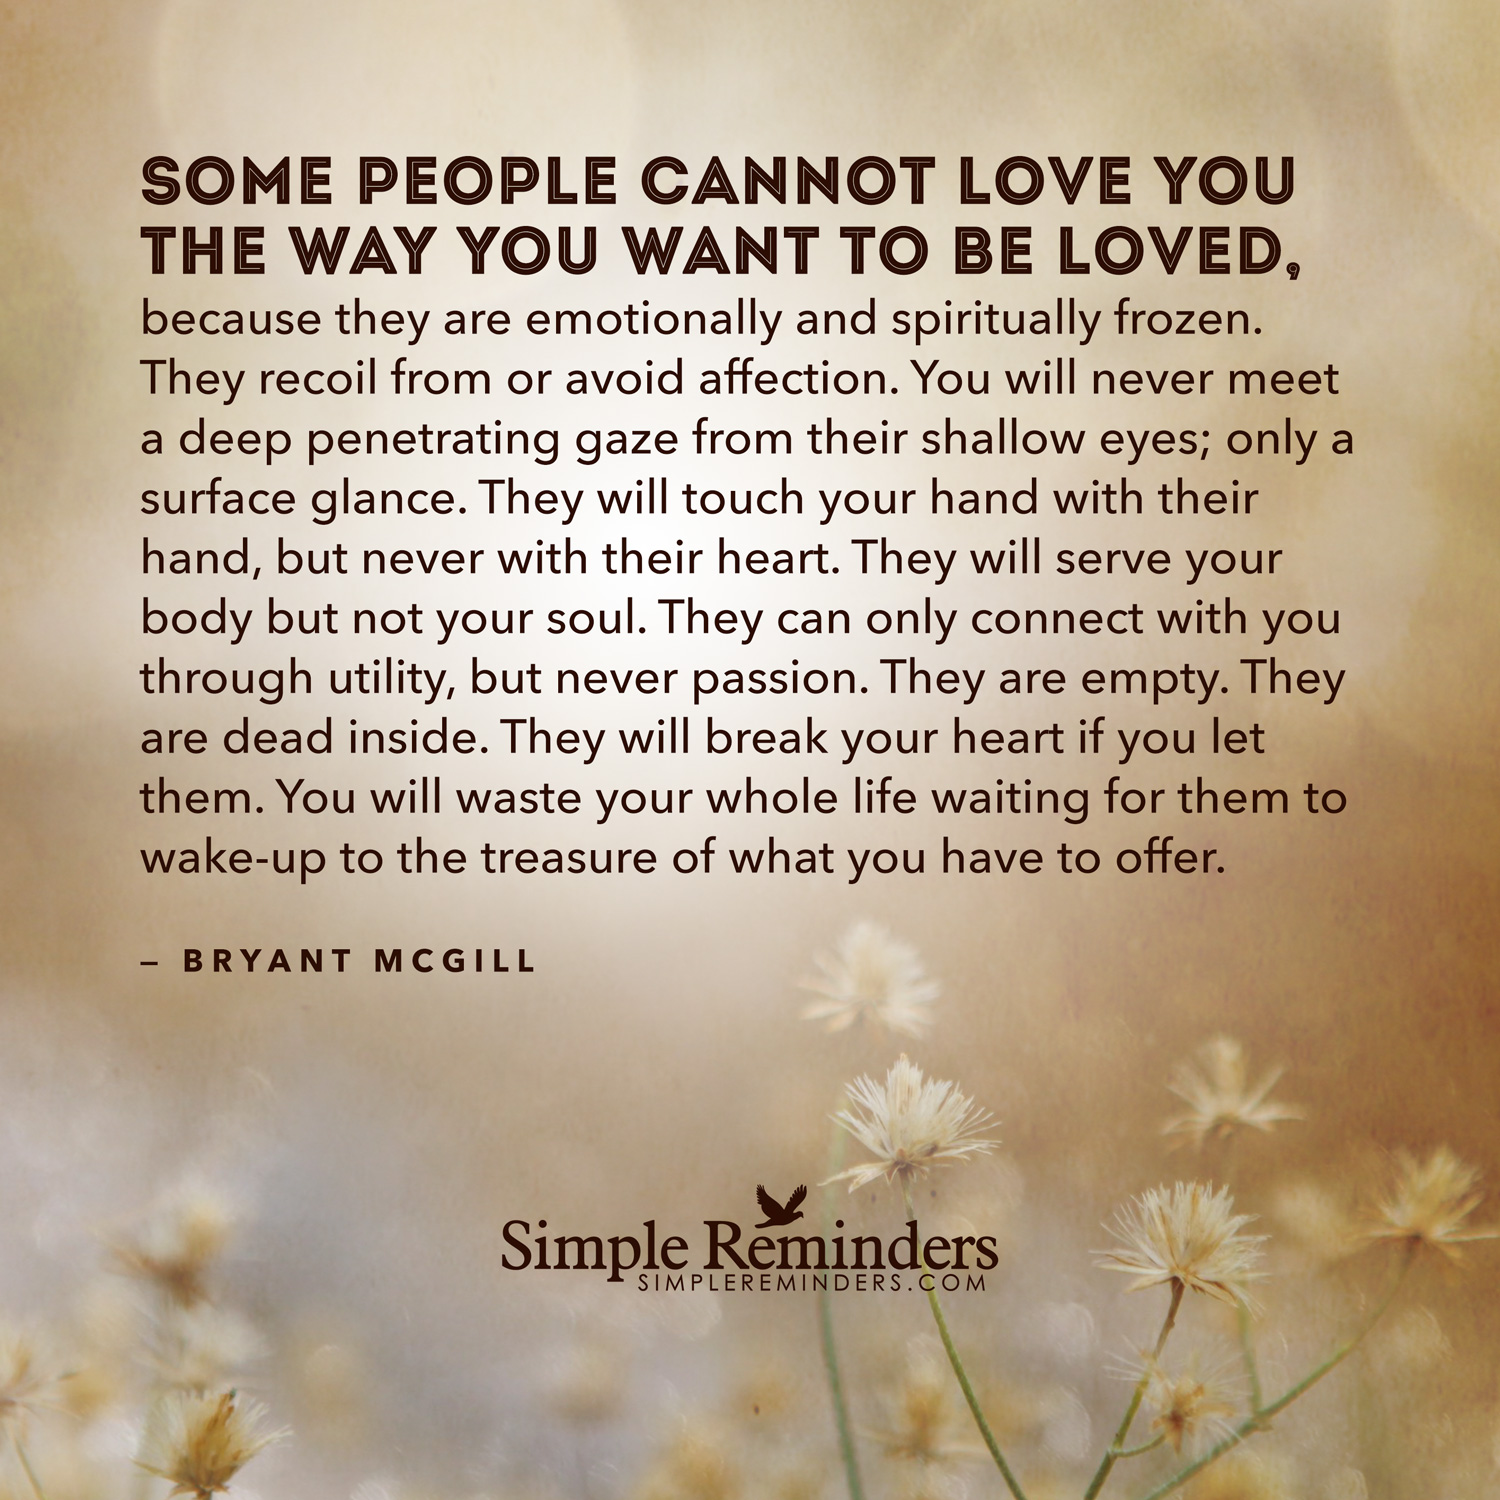 Quotes About Love Relationships: Bryant Mcgill Love Heals Quotes. QuotesGram